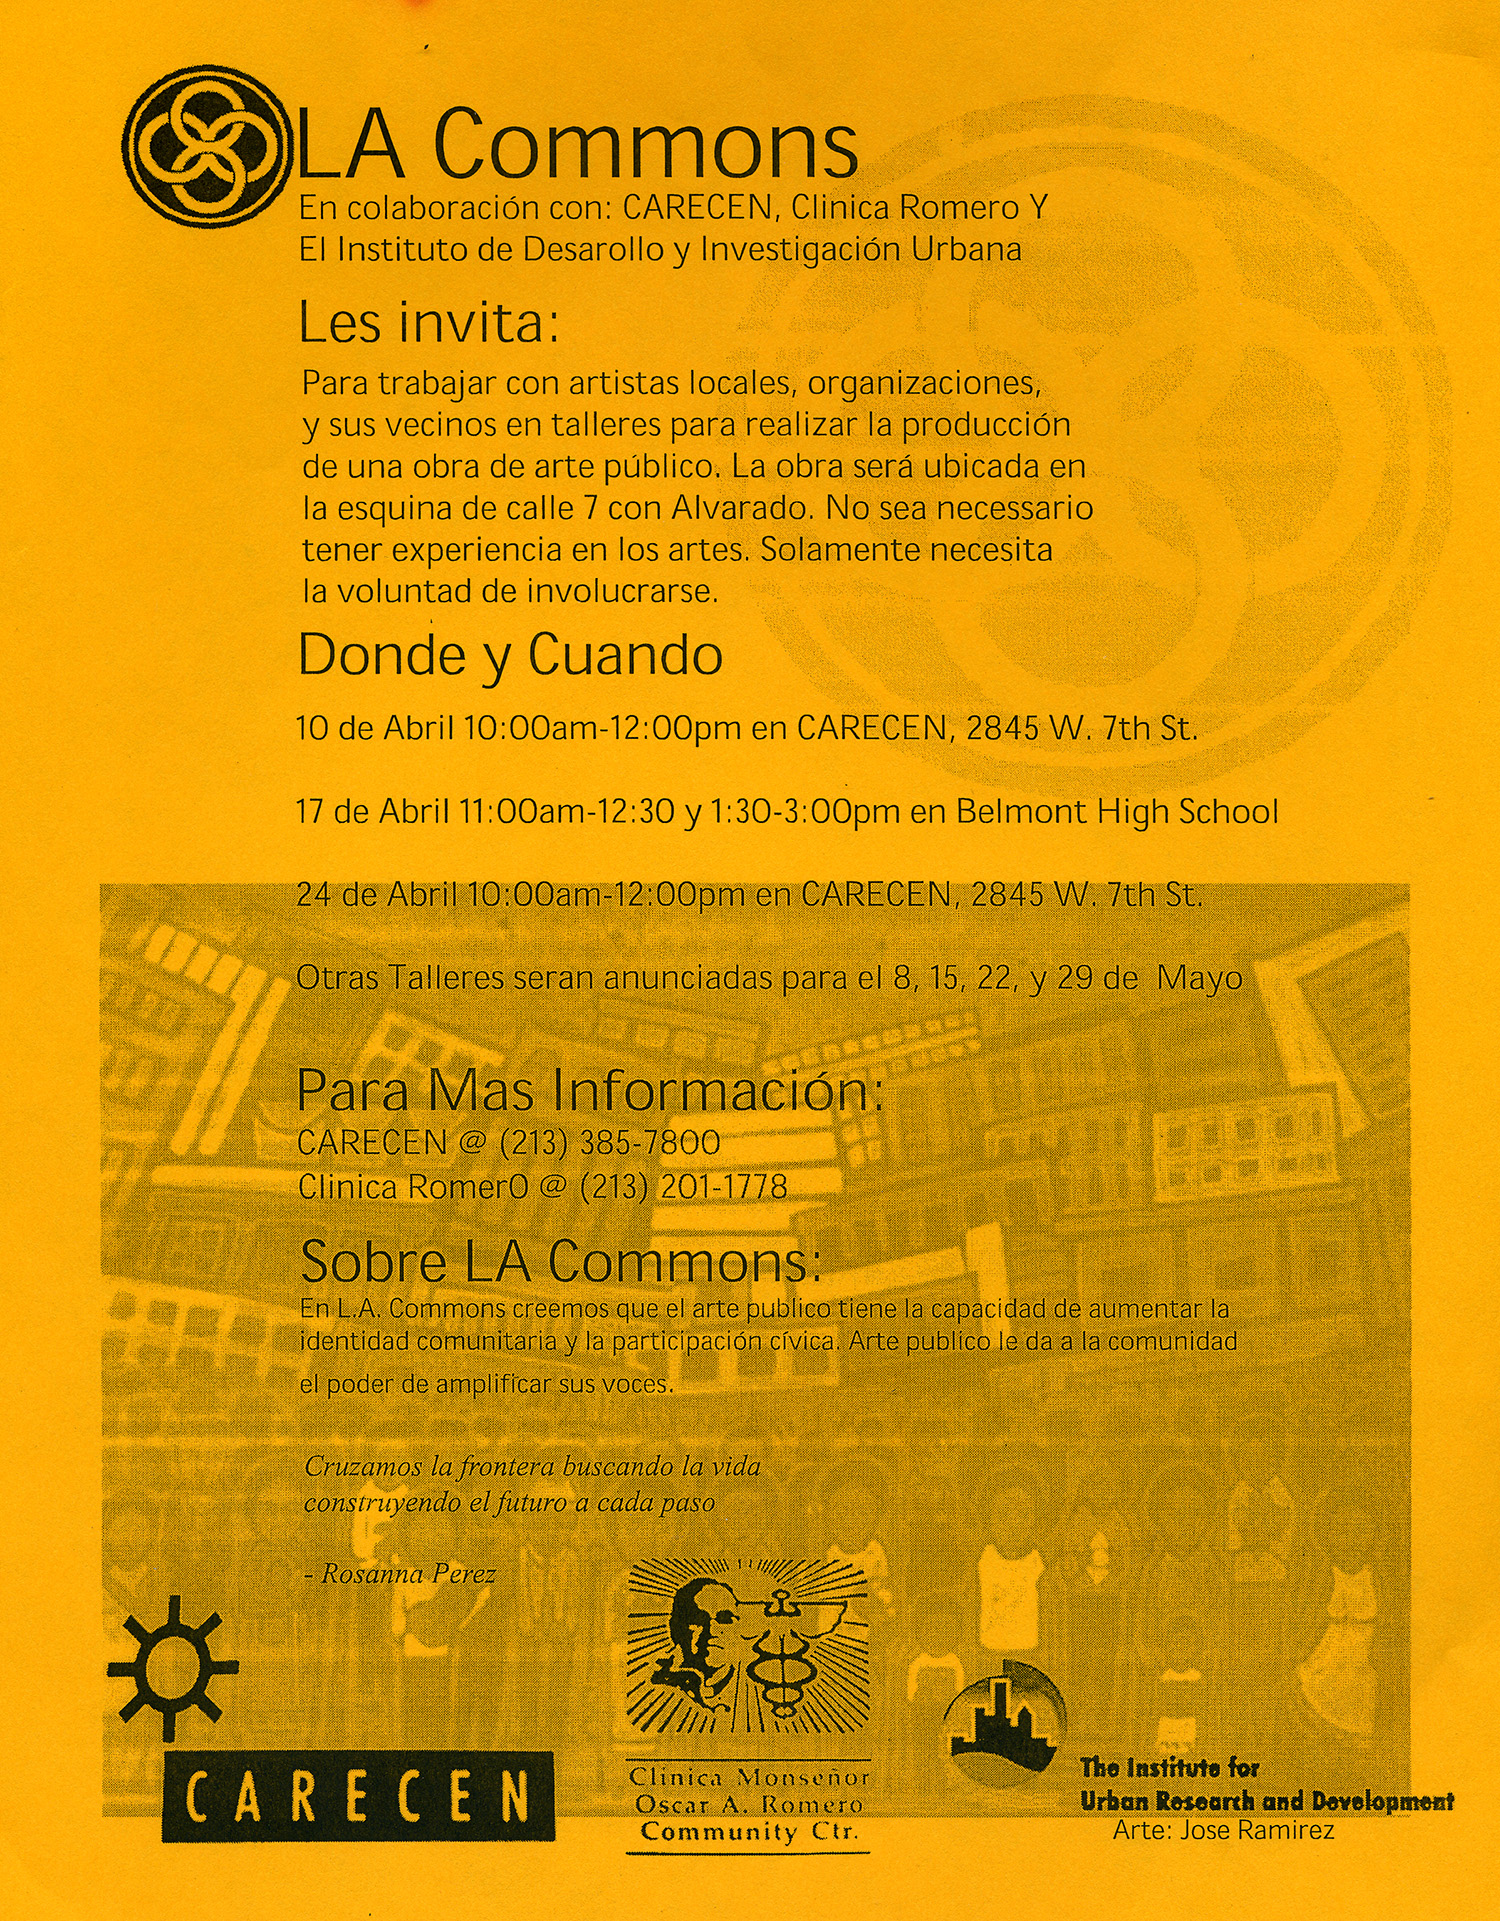 Flyer for LA Commons Tamale Cart Tile and Poetry Project, MacArthur Park, Pico Union, Los Angeles, 2002.